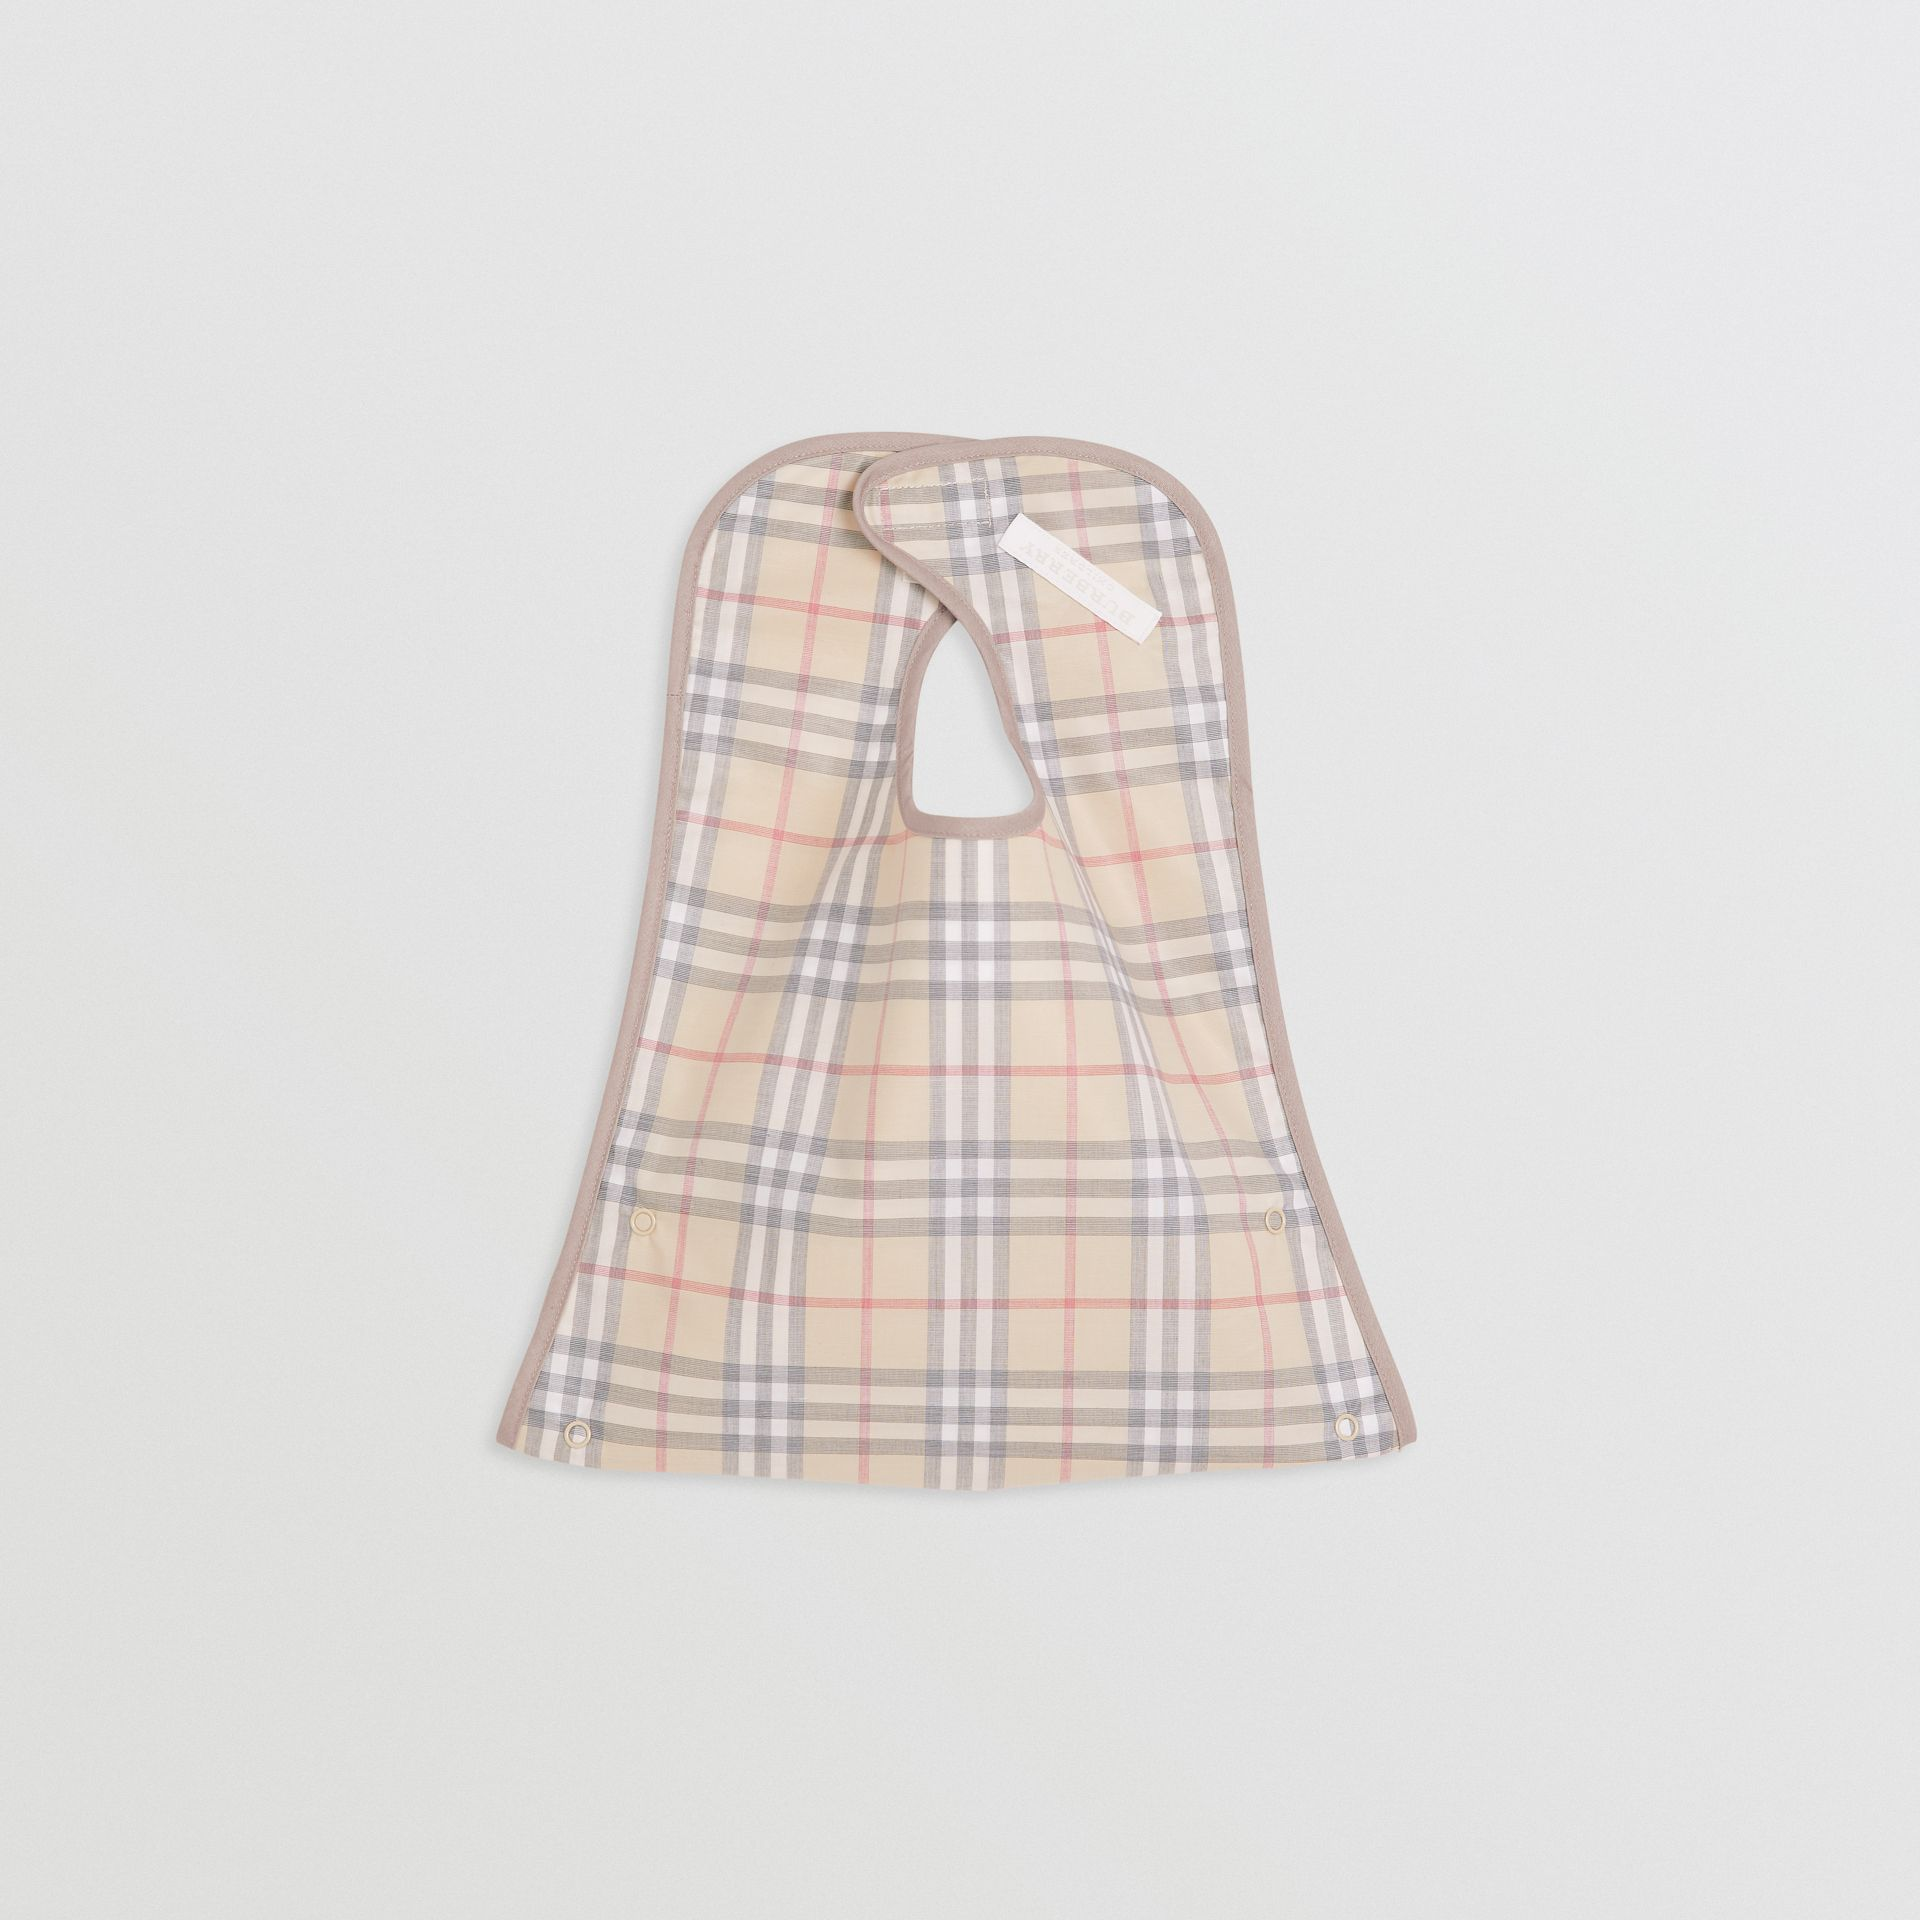 Coated Check Cotton Baby Bib in Pale Stone - Children | Burberry United States - gallery image 2